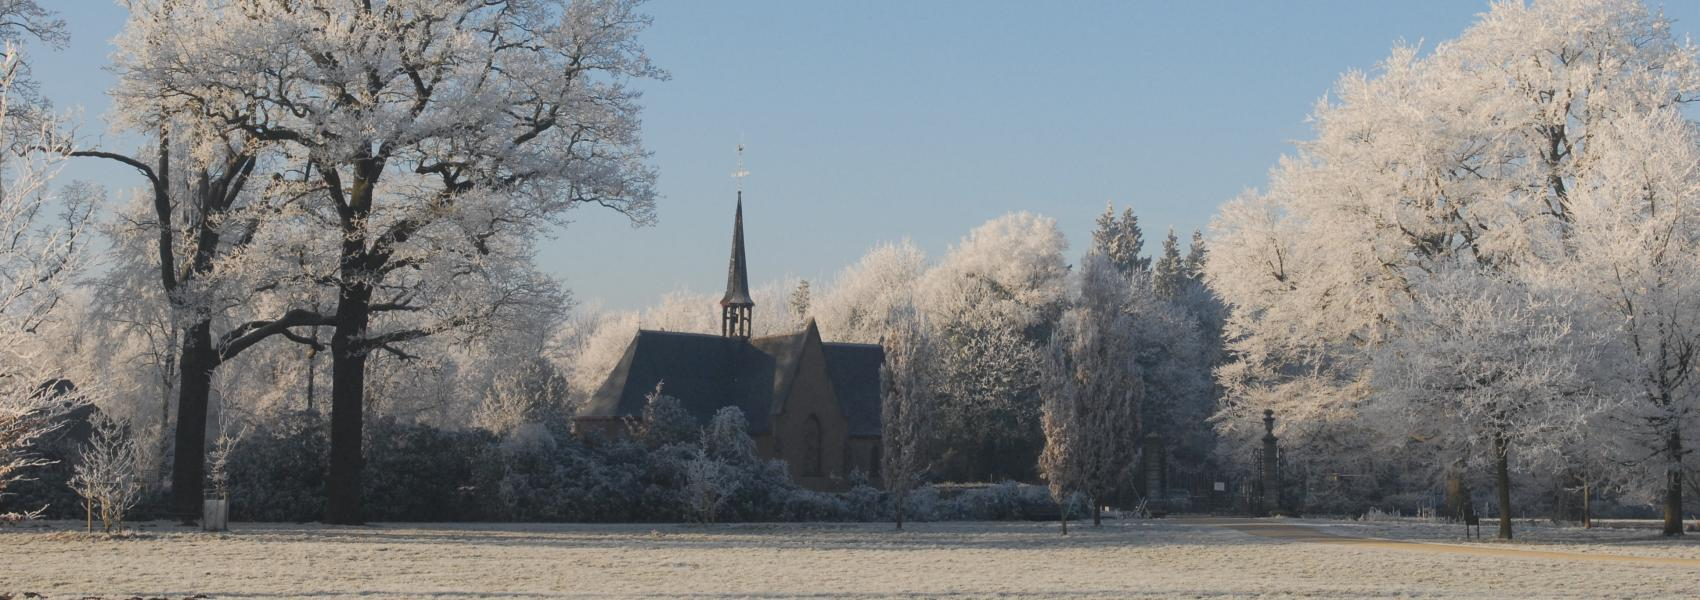 Winters landschap in Vordenstein